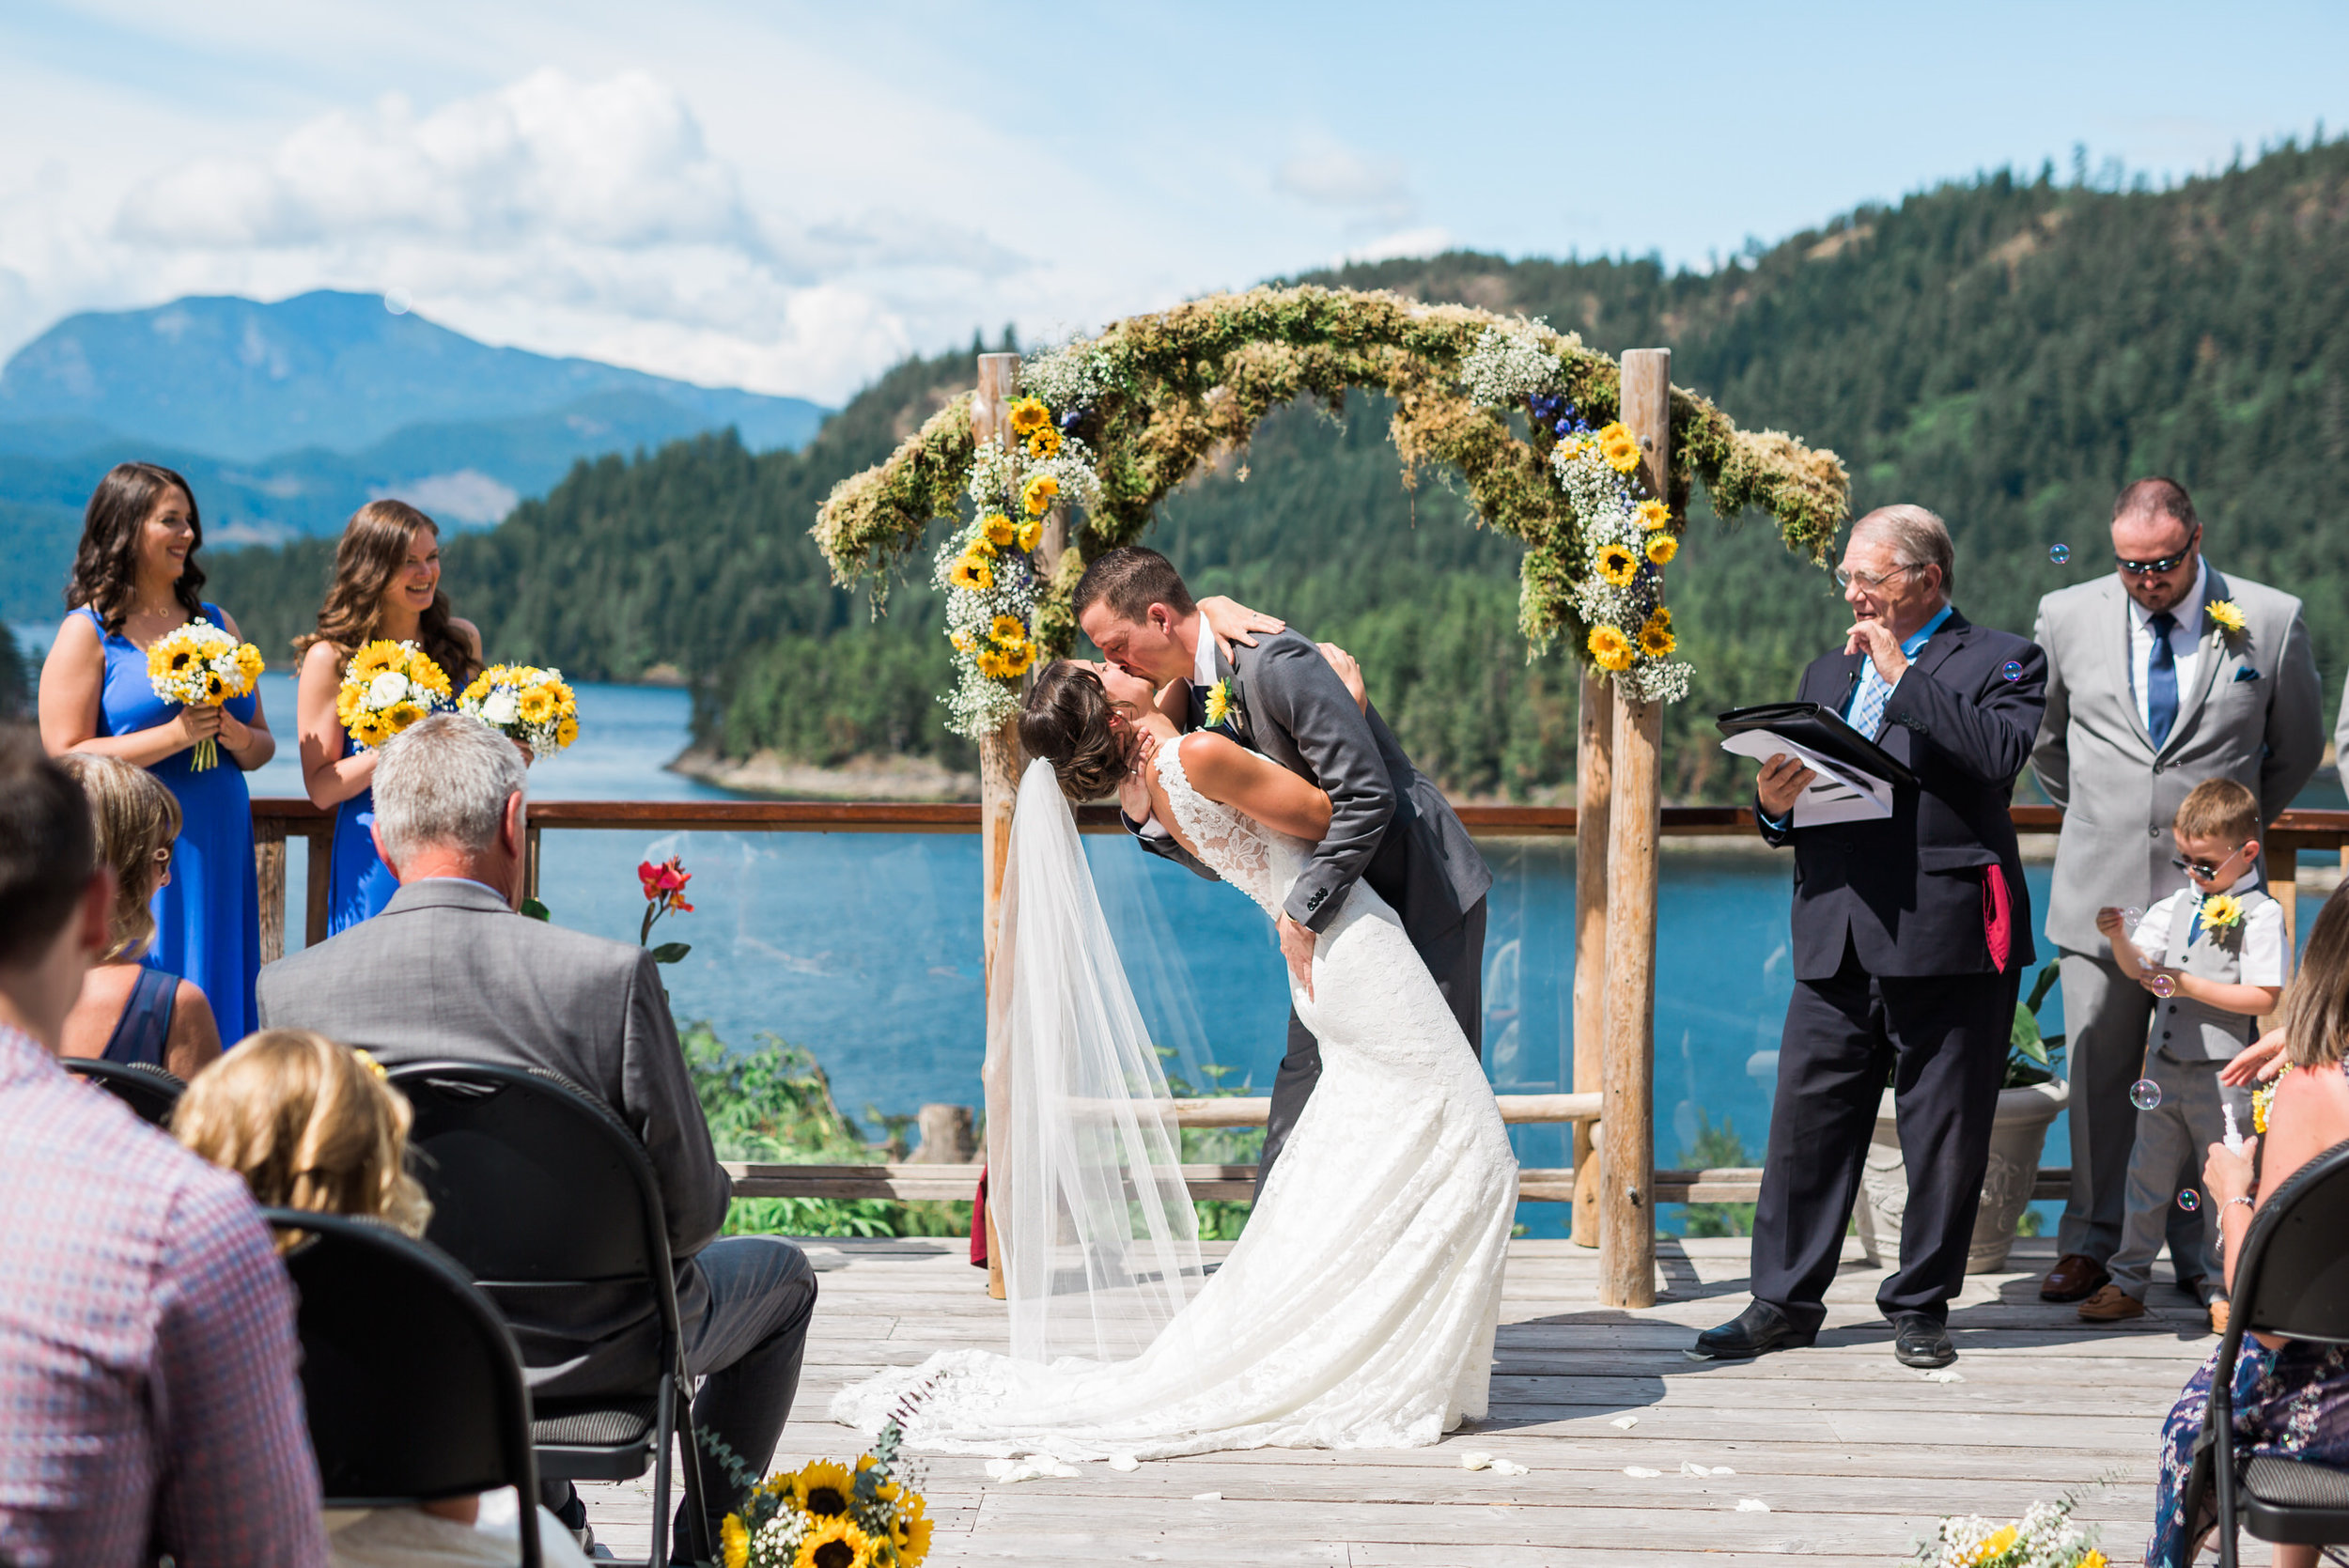 West Coast Wilderness Lodge Wedding Photos - Vancouver Wedding Photographer & Videographer - Sunshine Coast Wedding Photos - Sunshine Coast Wedding Photographer - Jennifer Picard Photography - IMG_8198.jpg